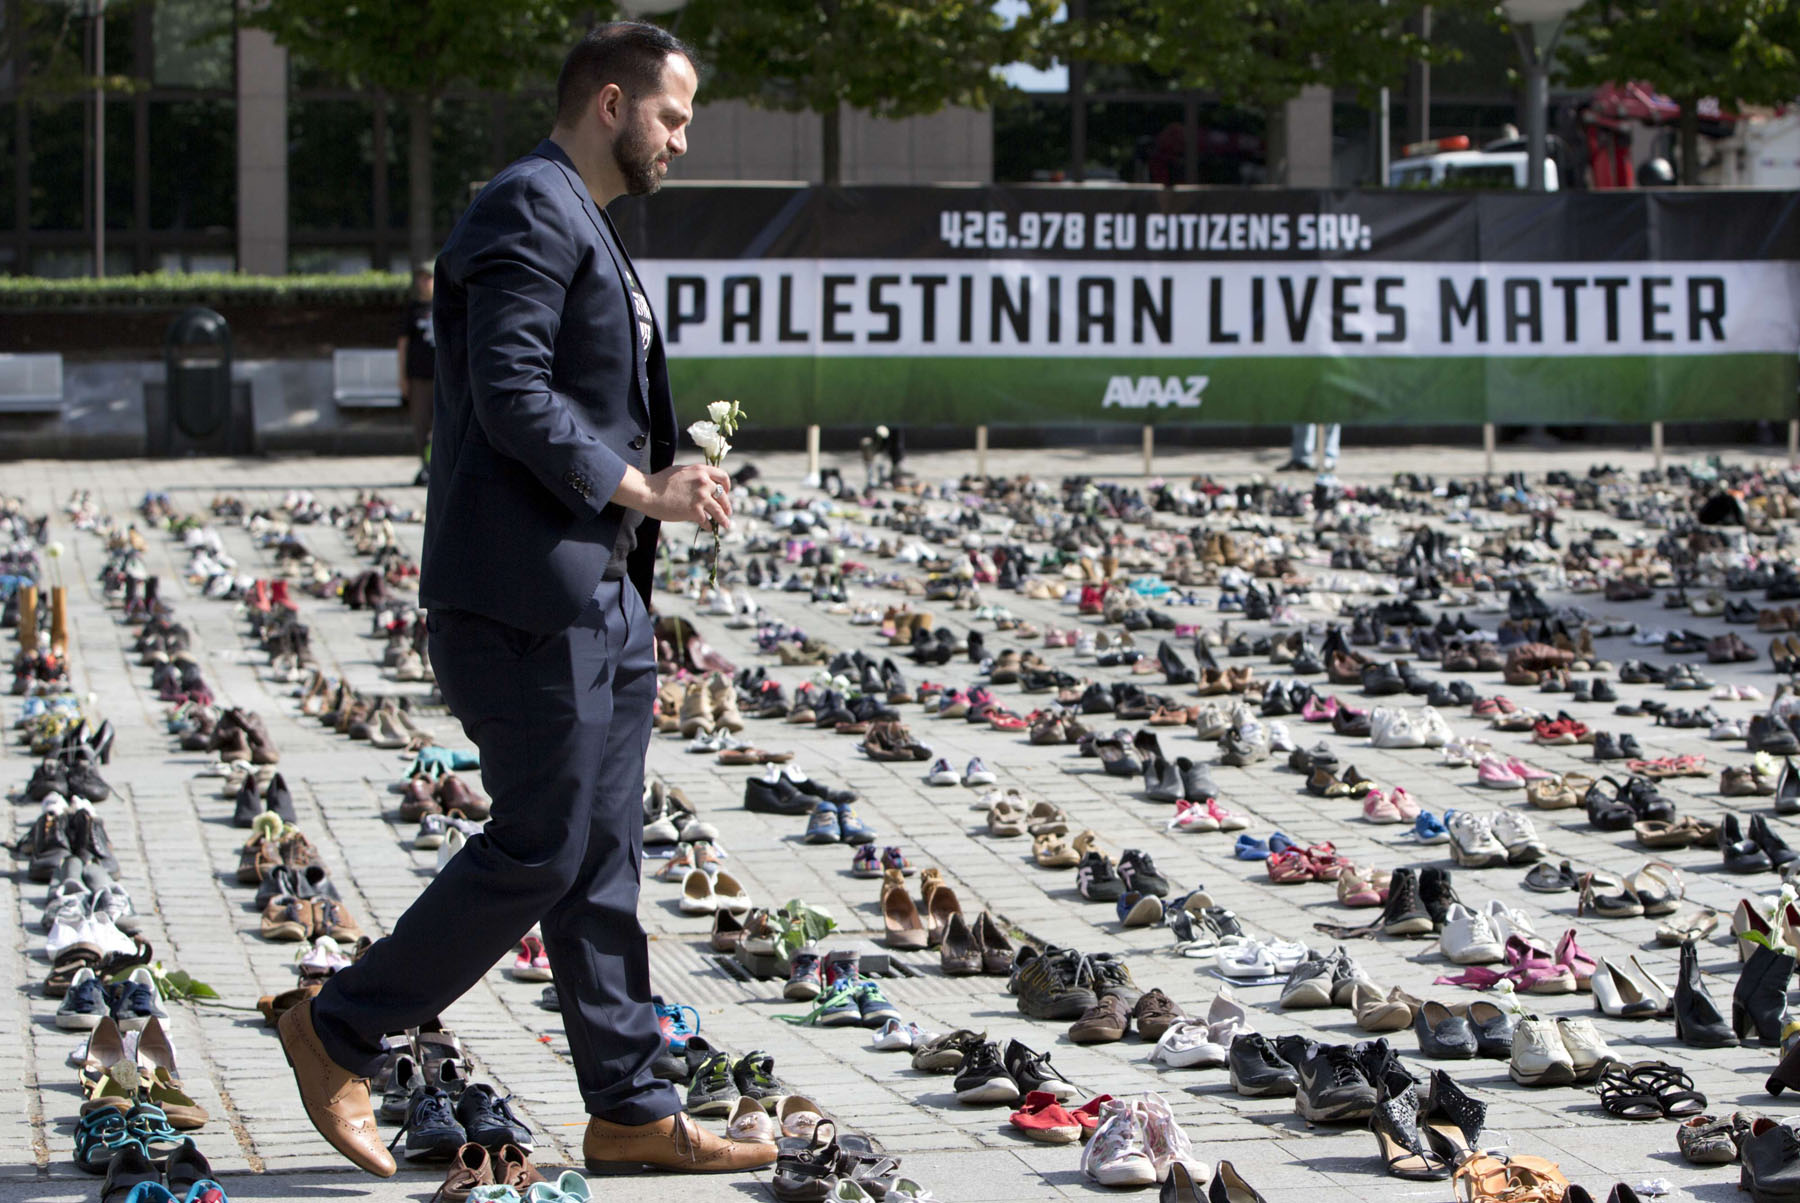 A man walks with flowers in Brussels among pairs of shoes during a demonstration in solidarity with Palestinians. (AP)